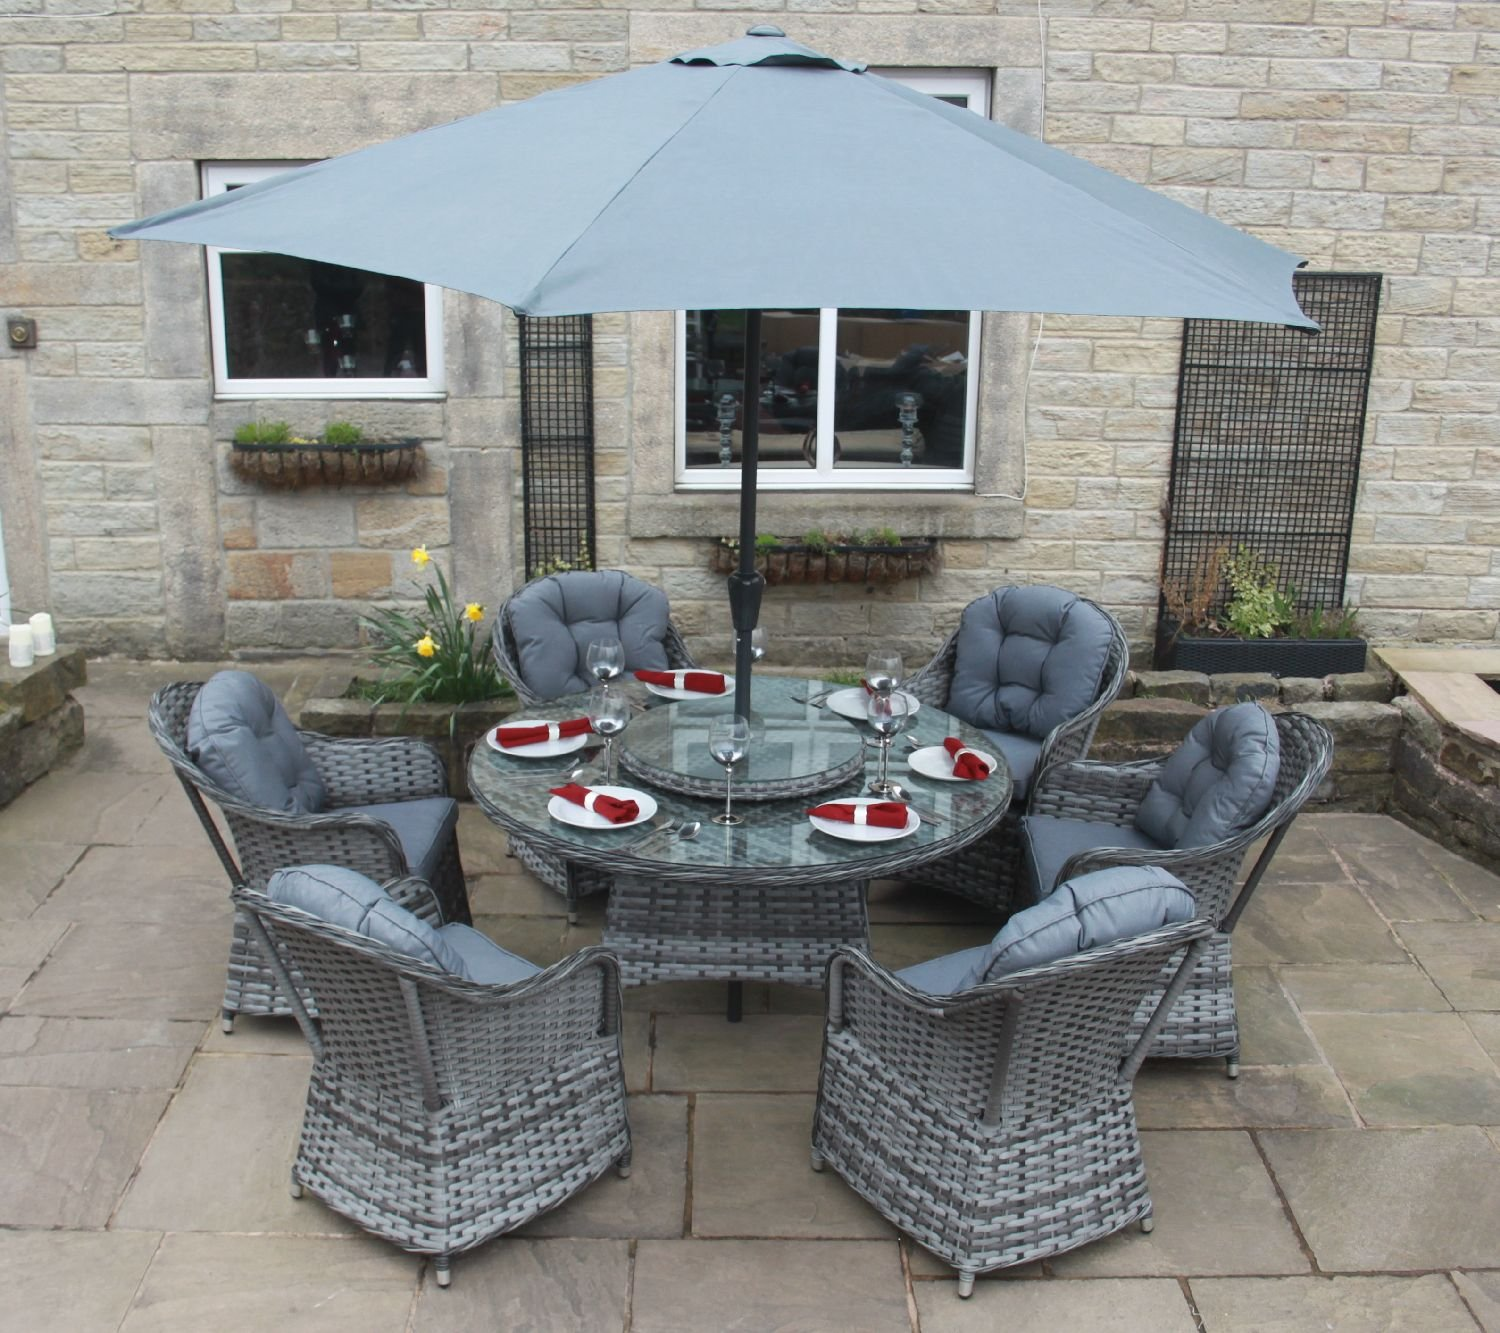 luxury grey rattan garden furniture 6 seat round dining set with parasol amazoncouk garden outdoors - Garden Furniture 6